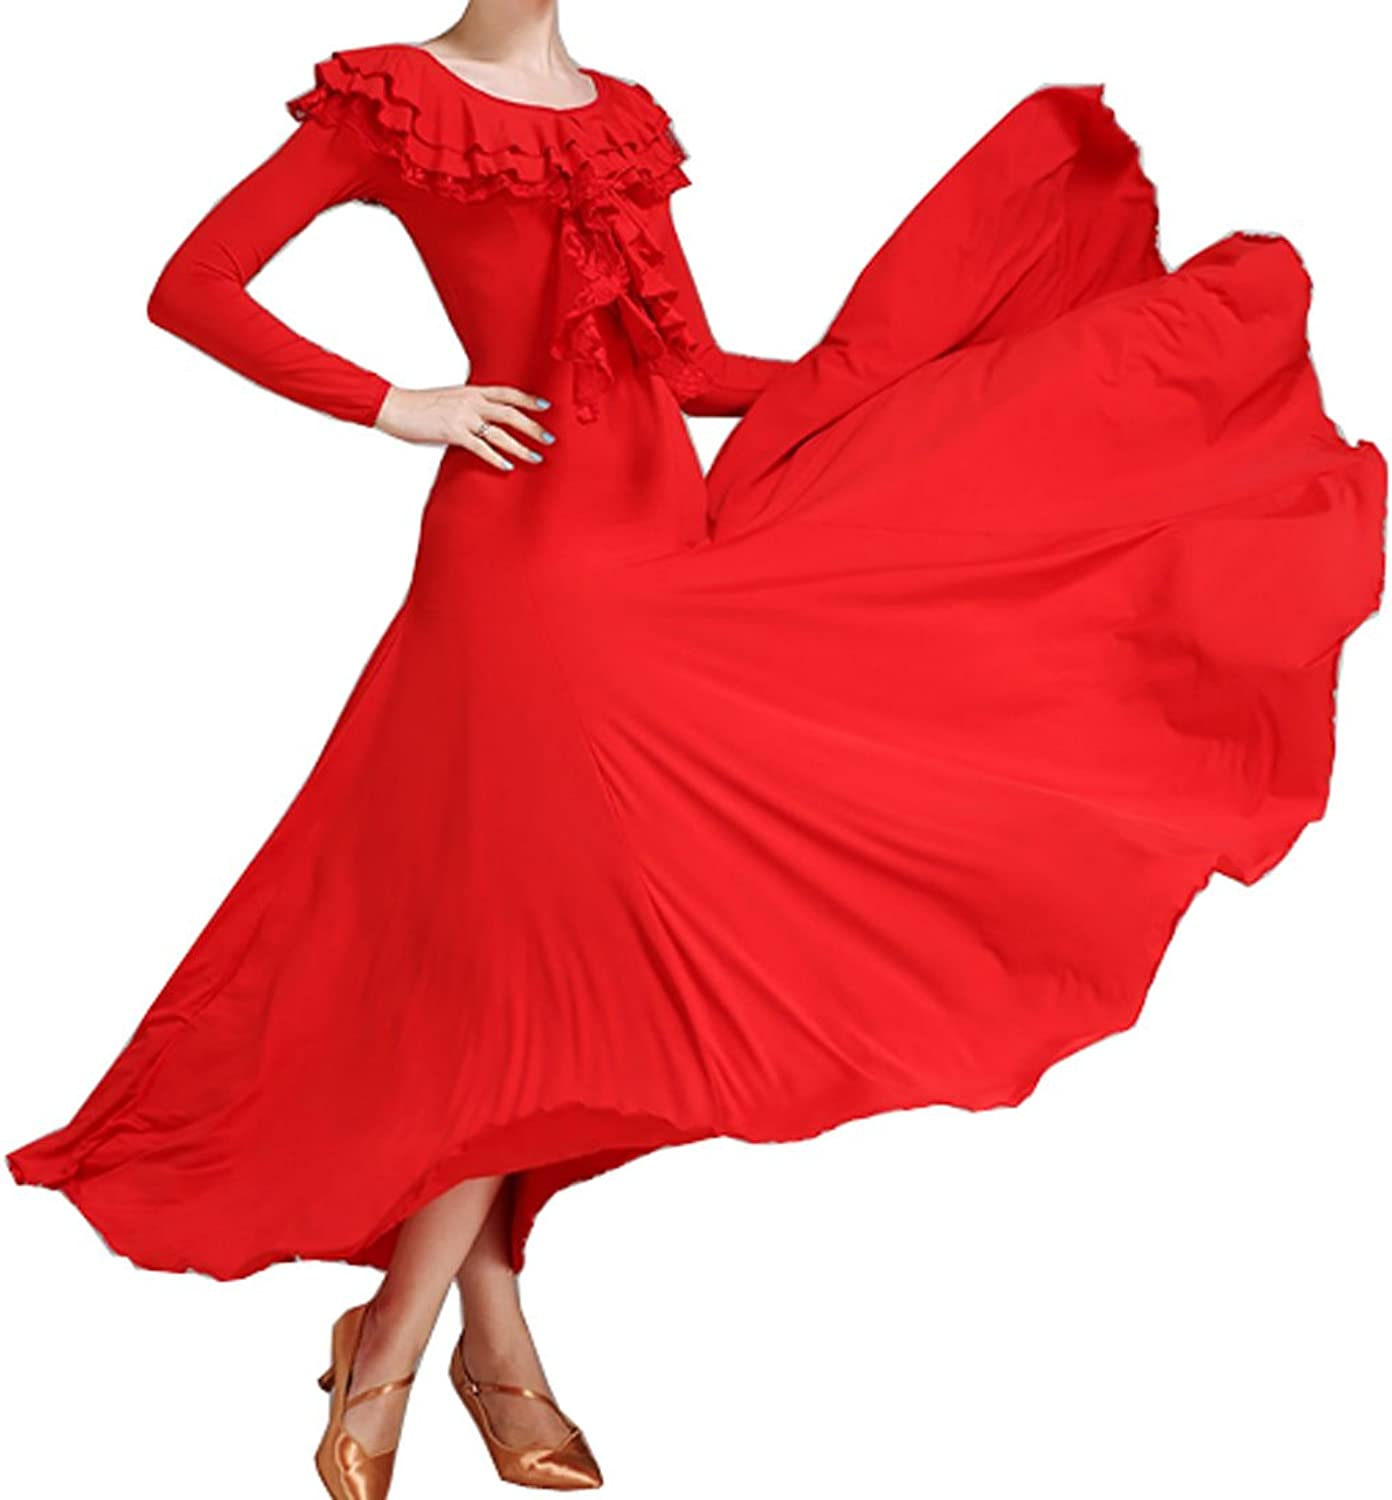 Multilayer Lotus Collar Ballroom Dress Modern Skirt Waltz Dress Cha Cha Dress Tango Dress